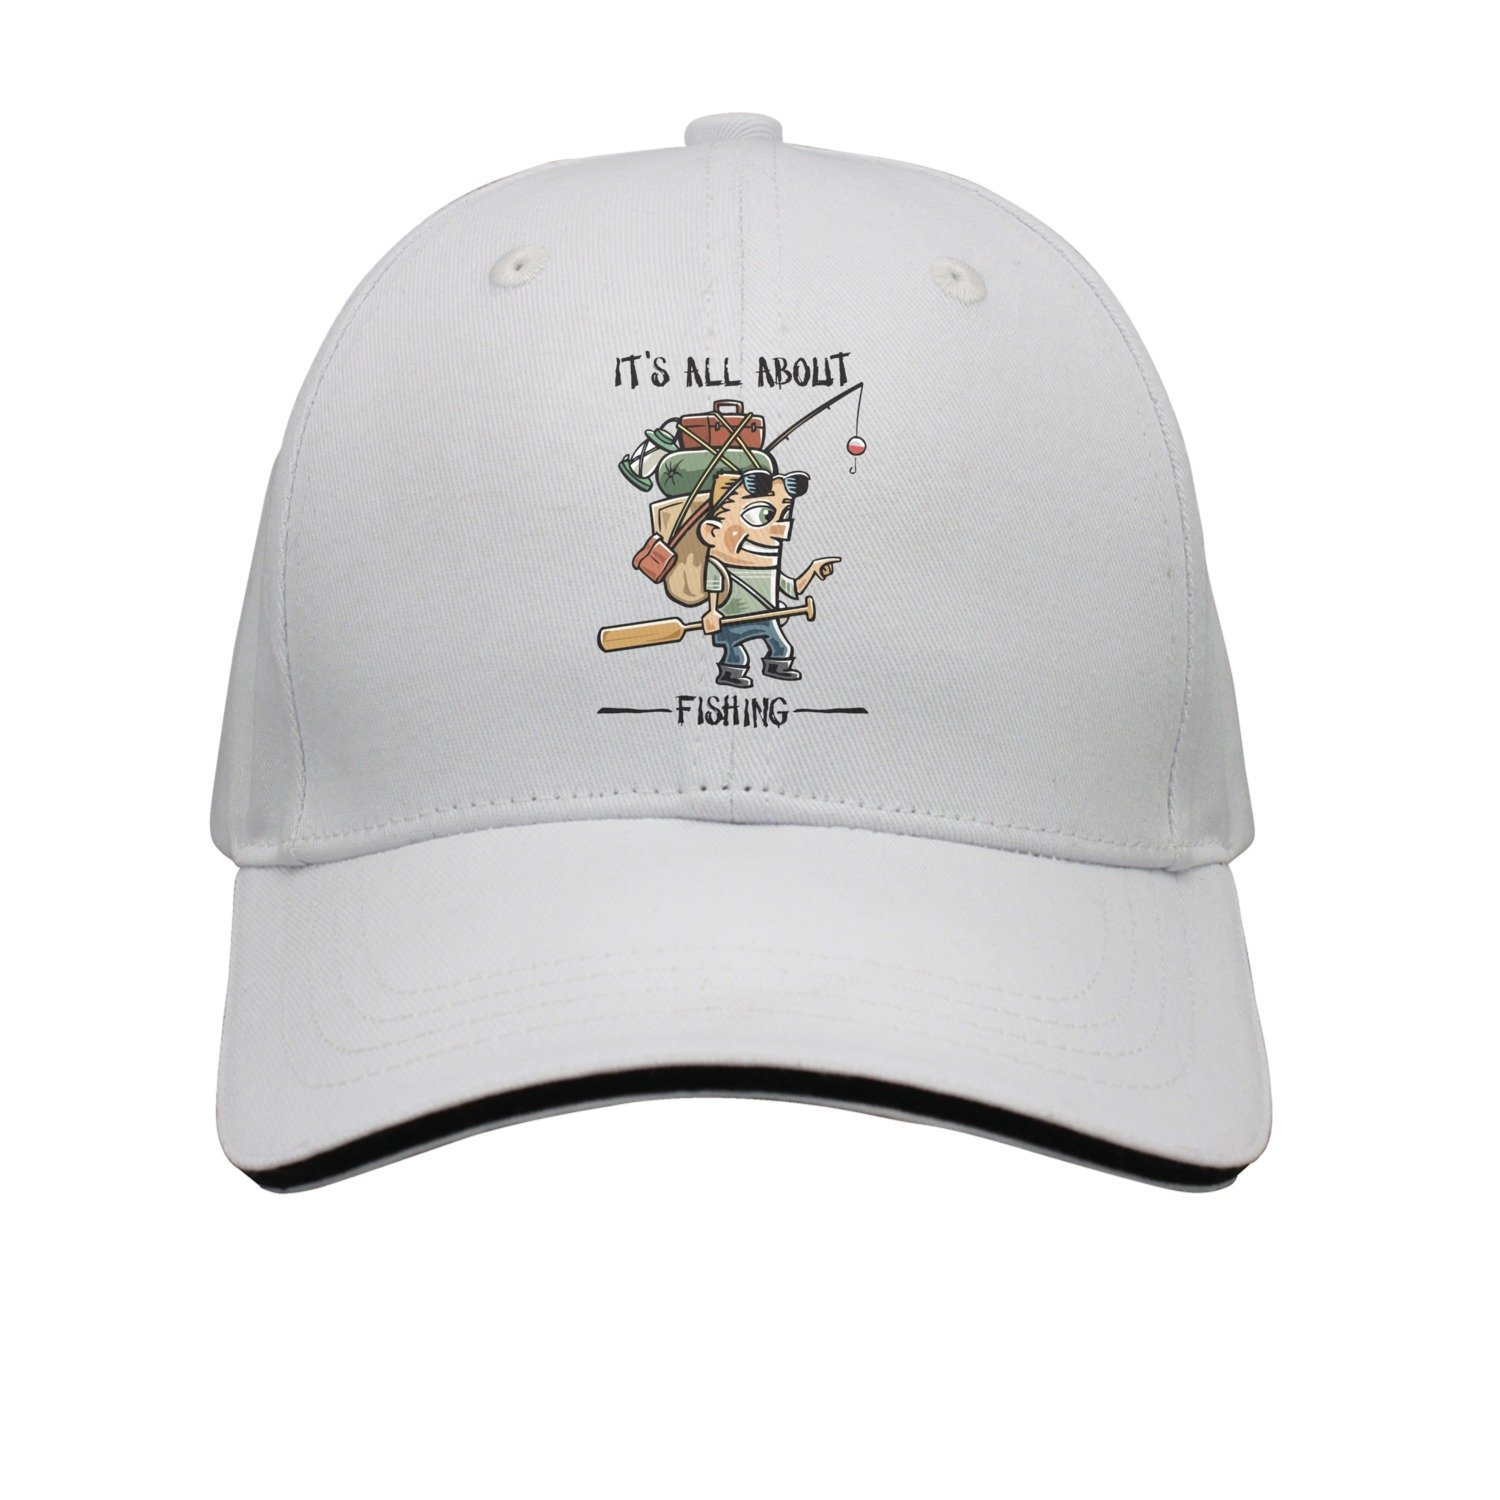 SJSNBZ Its All About Fishing Unisex Adult Mens Funny Snapback Caps Womens Snapback  Caps 24b93f220ed